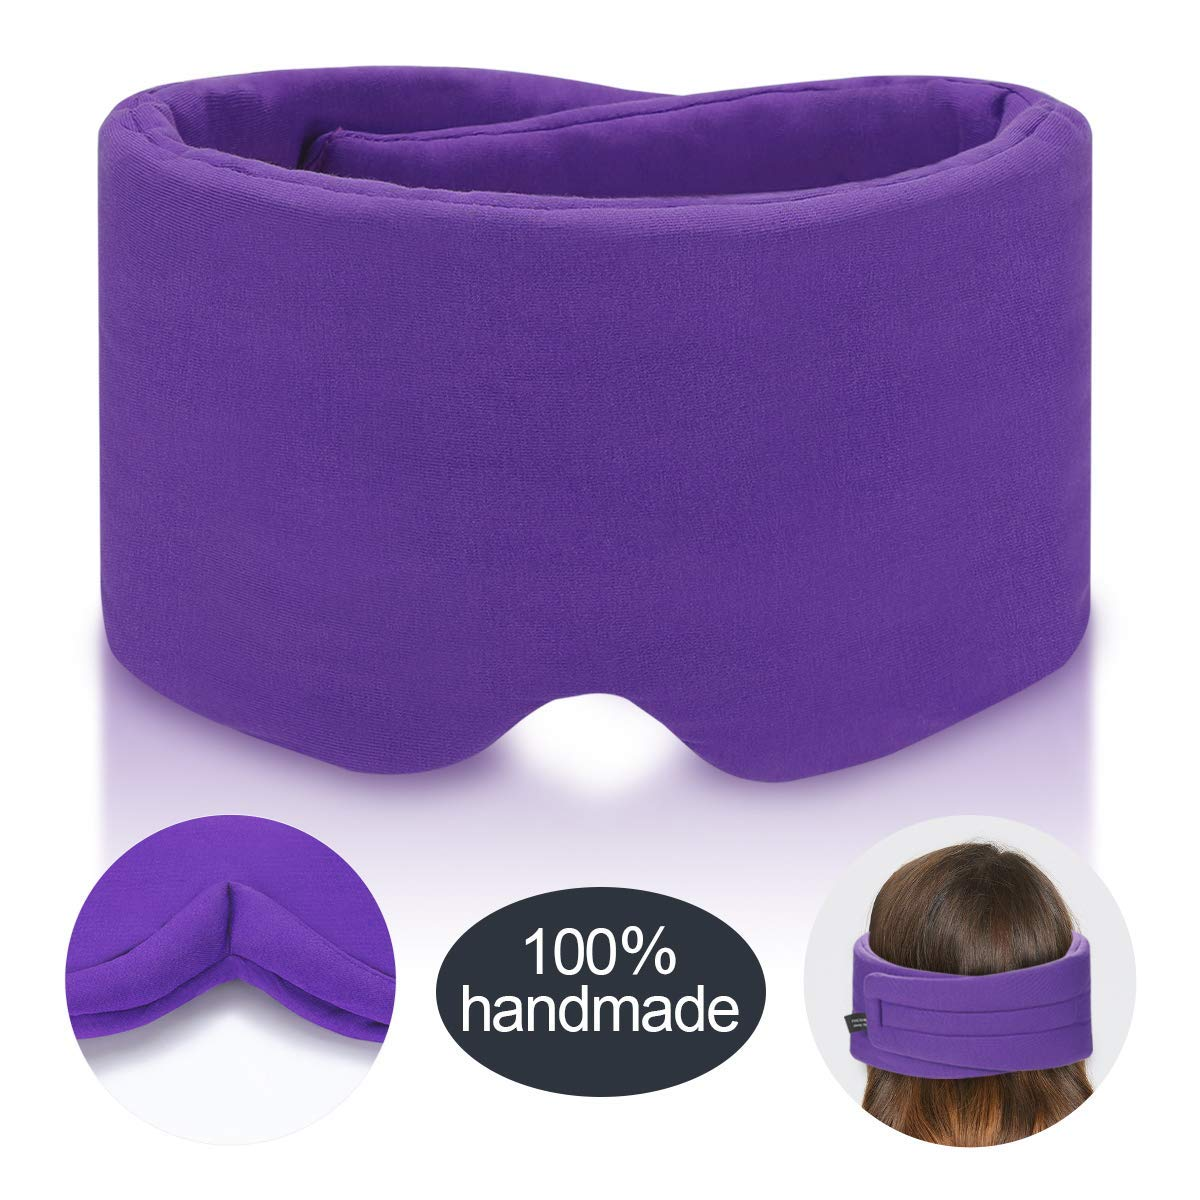 Handmade Cotton Sleep Mask - Nose Wing Design Sleeping Eye Mask Comfortable and Adjustable Blinder Blindfold Airplane with Travel Pouch - Night Companion Eyeshade for Men Women (Purple Cotton)